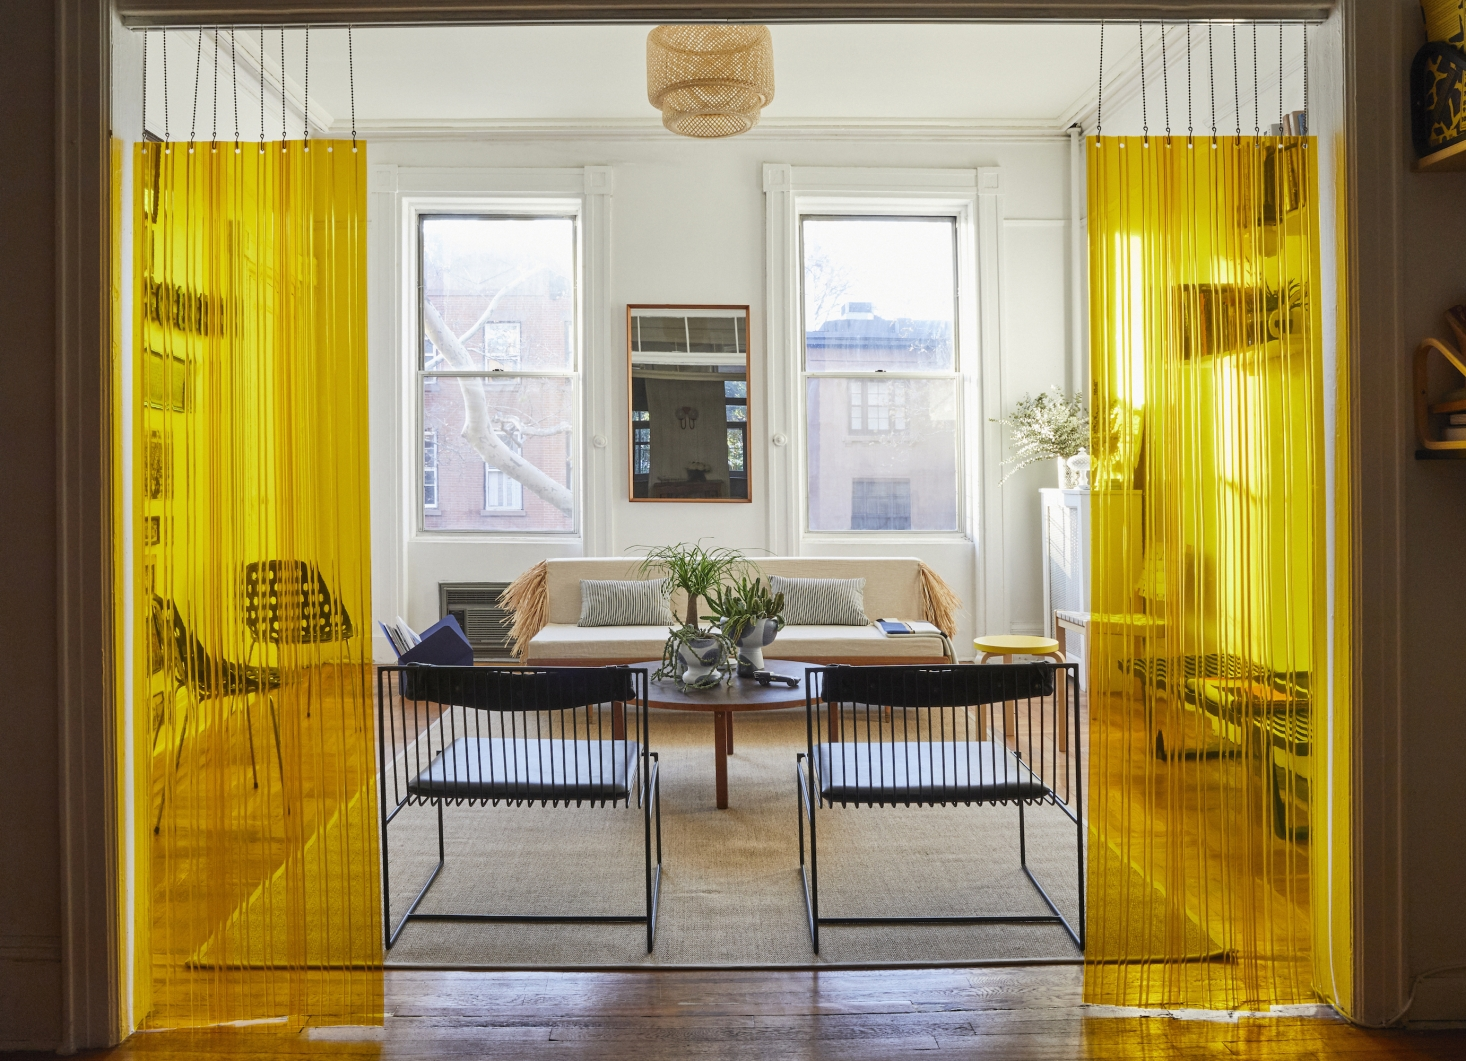 To divide the rooms, Valentin came up with an unconventional solution: yellow strip curtains, the kind typically used in industrial food storage facilities, suspended from a hospital drop chain sourced from a medical supply website. The black metal and leather chairs are Arnold Lounge Chairs from Valentin's company, Bogus Studio ($980 each); the jute Osted Rug is from Ikea. The light fixture is a rental hack—Ikea's Sinnerlig Bamboo Shade—to cover up the landlord's less appealing ceiling fixture.